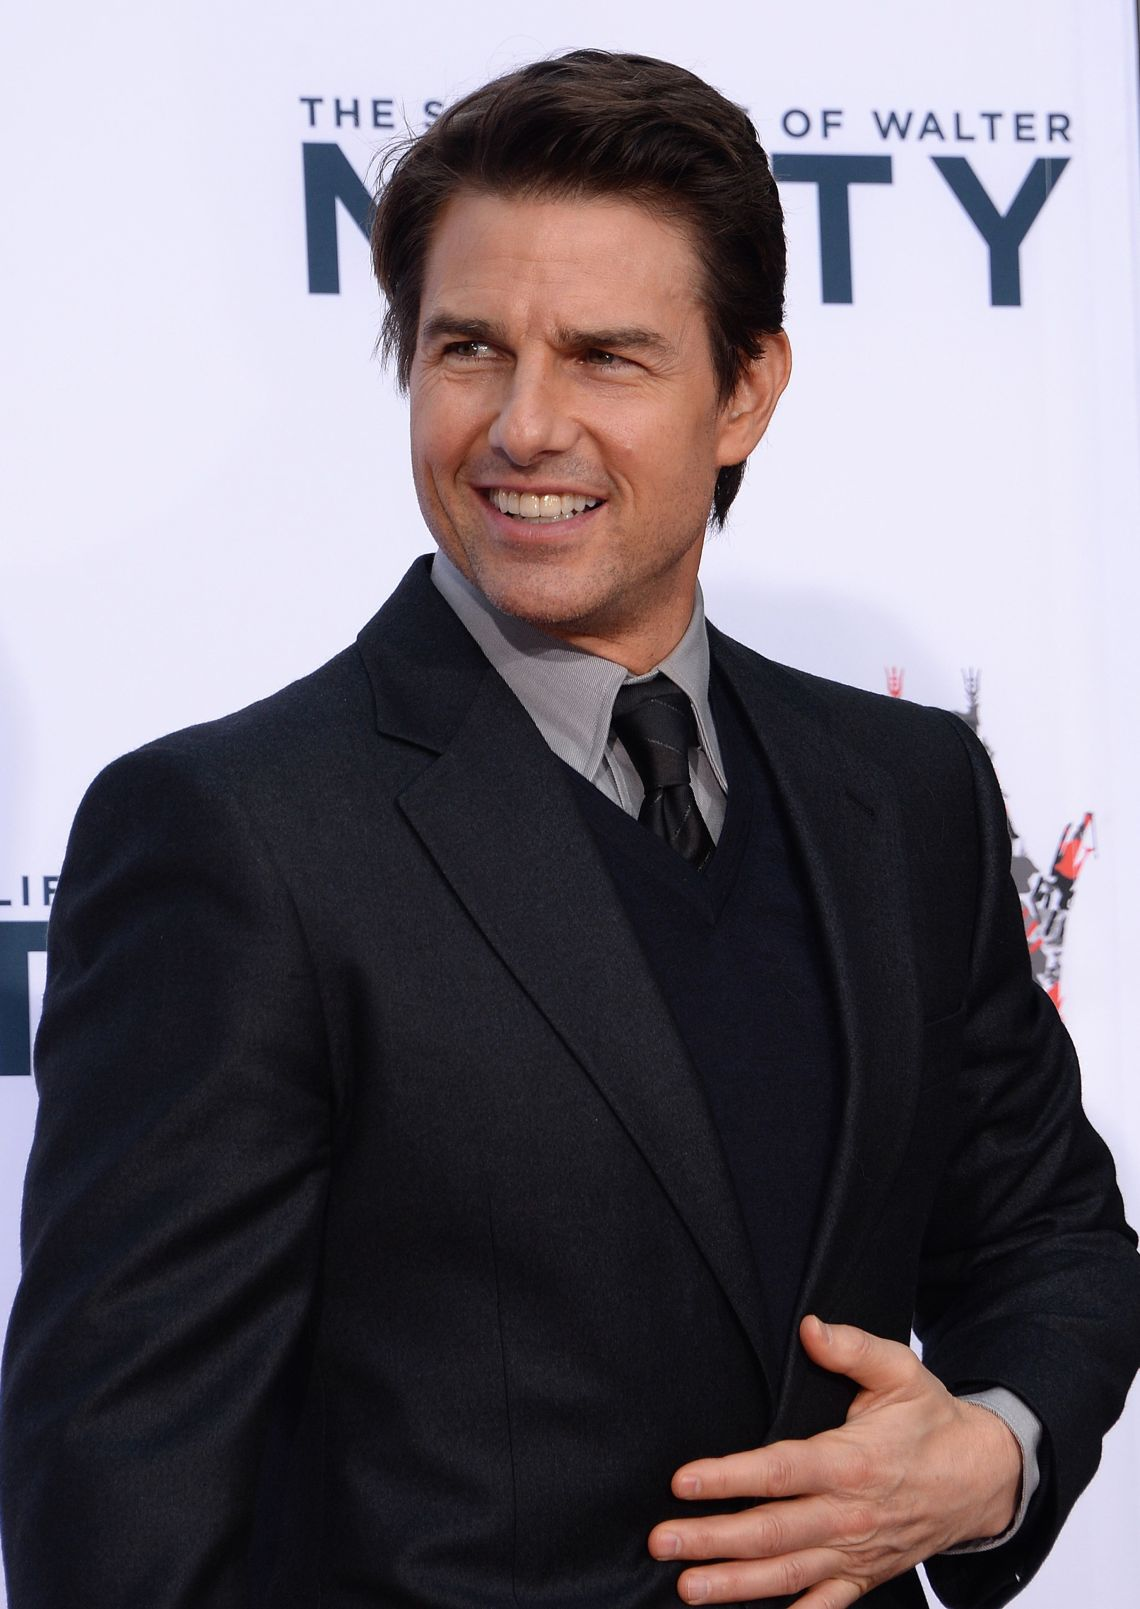 With all the constant furore surrounding Tom Cruise's personal life, it's often forgotten that he is a legitimate actor. He has been nominated for three Oscars over the course of his career, although he's never come out on top in his category.